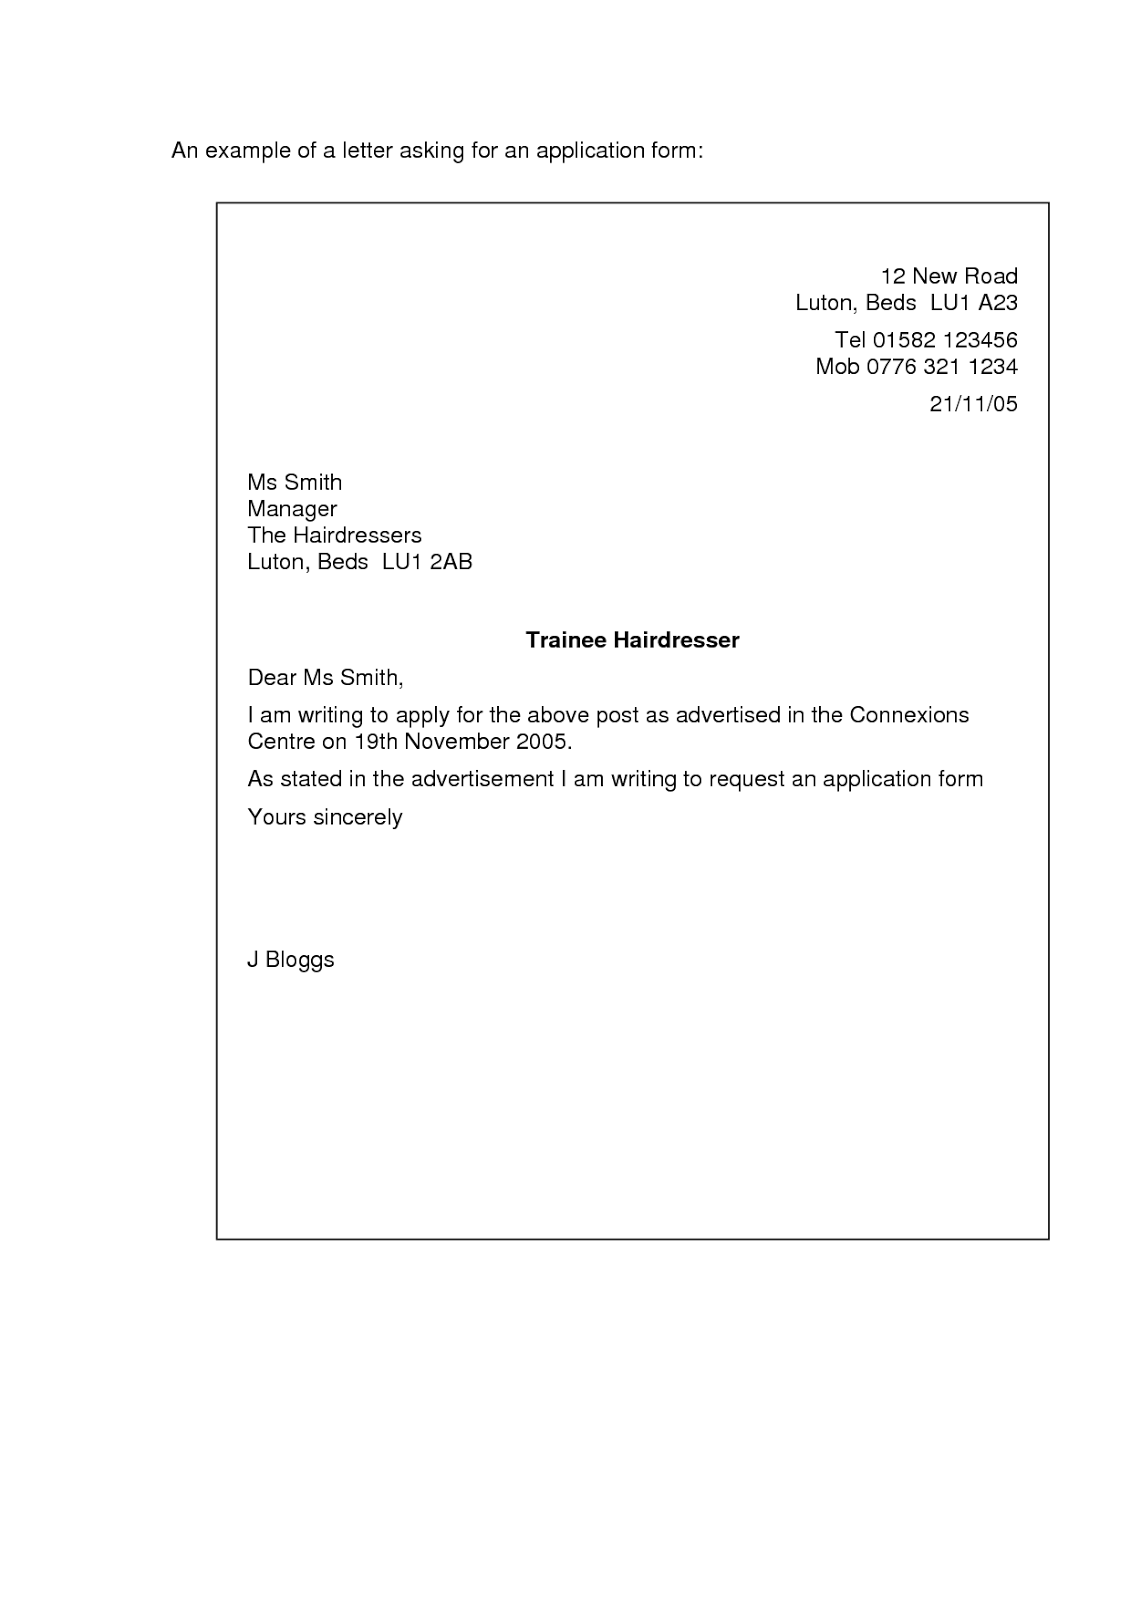 job application cover letter examples - Simple Email Cover Letter For Resume